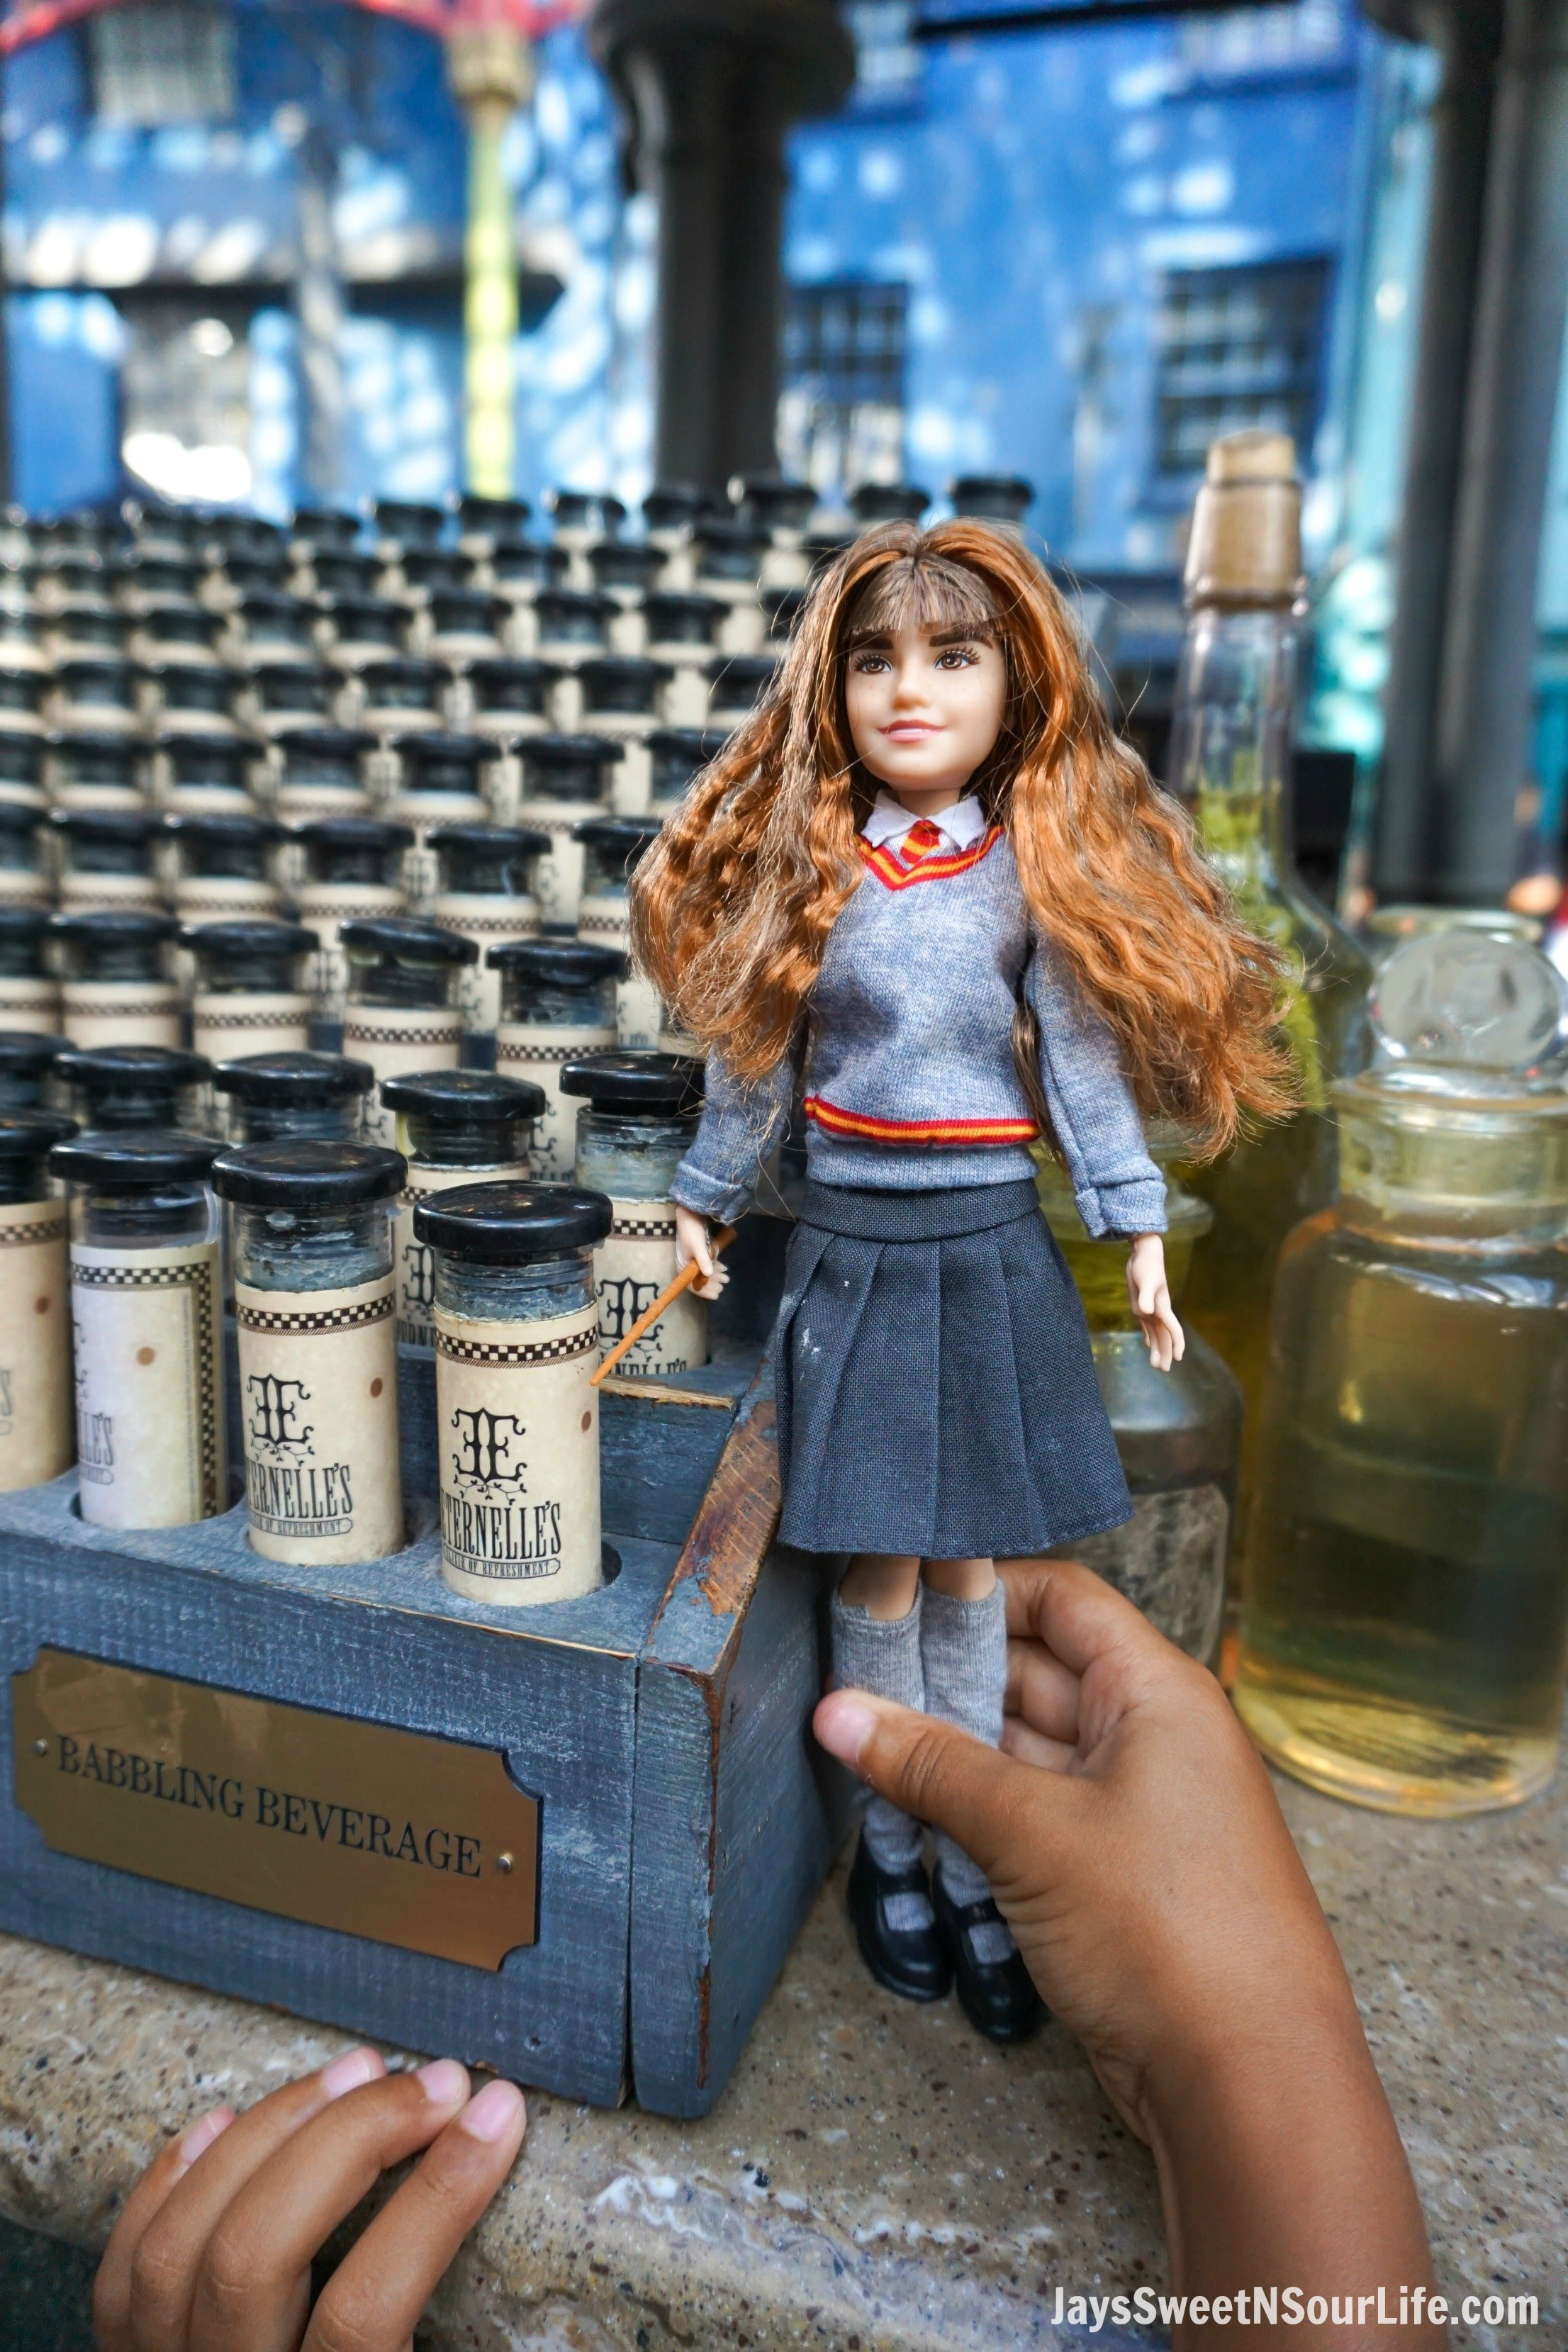 Harry Potter Dolls Hermione Playing Potions in Diagon Alley. Learn more aboutthese collectable Harry Potter Dolls at Jayssweetnsourlife.com .